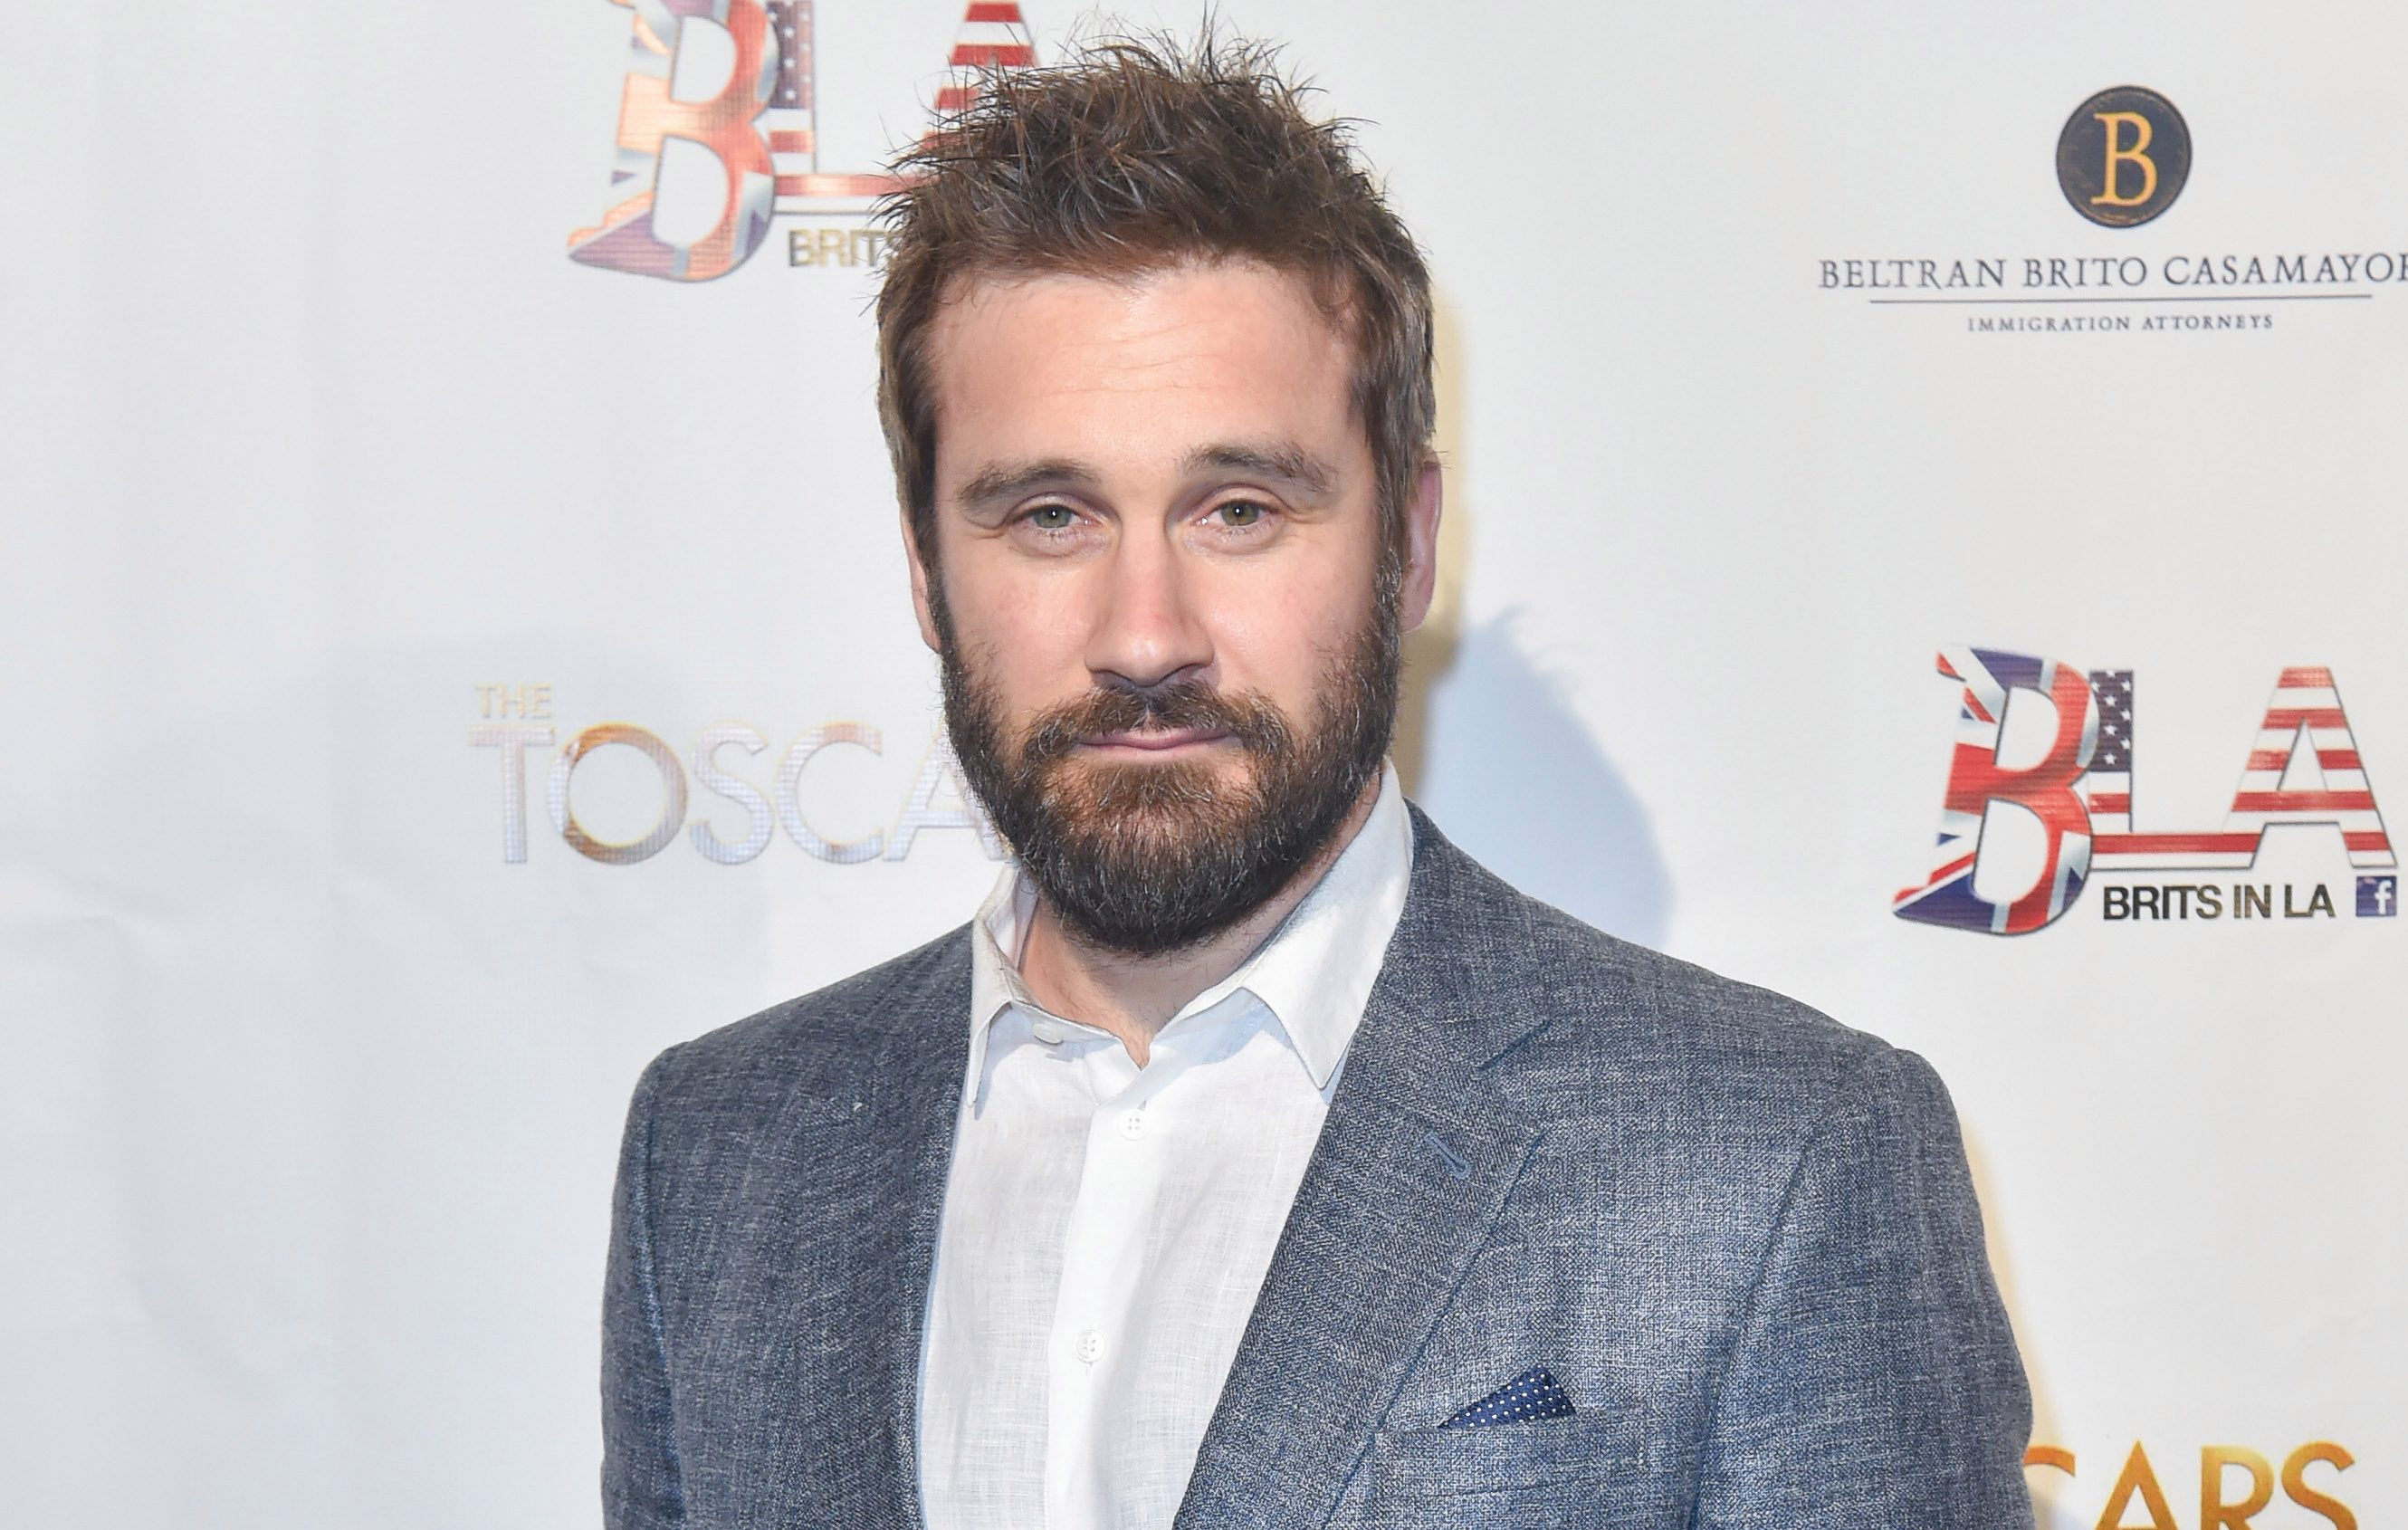 Vikings' Clive Standen warns f...